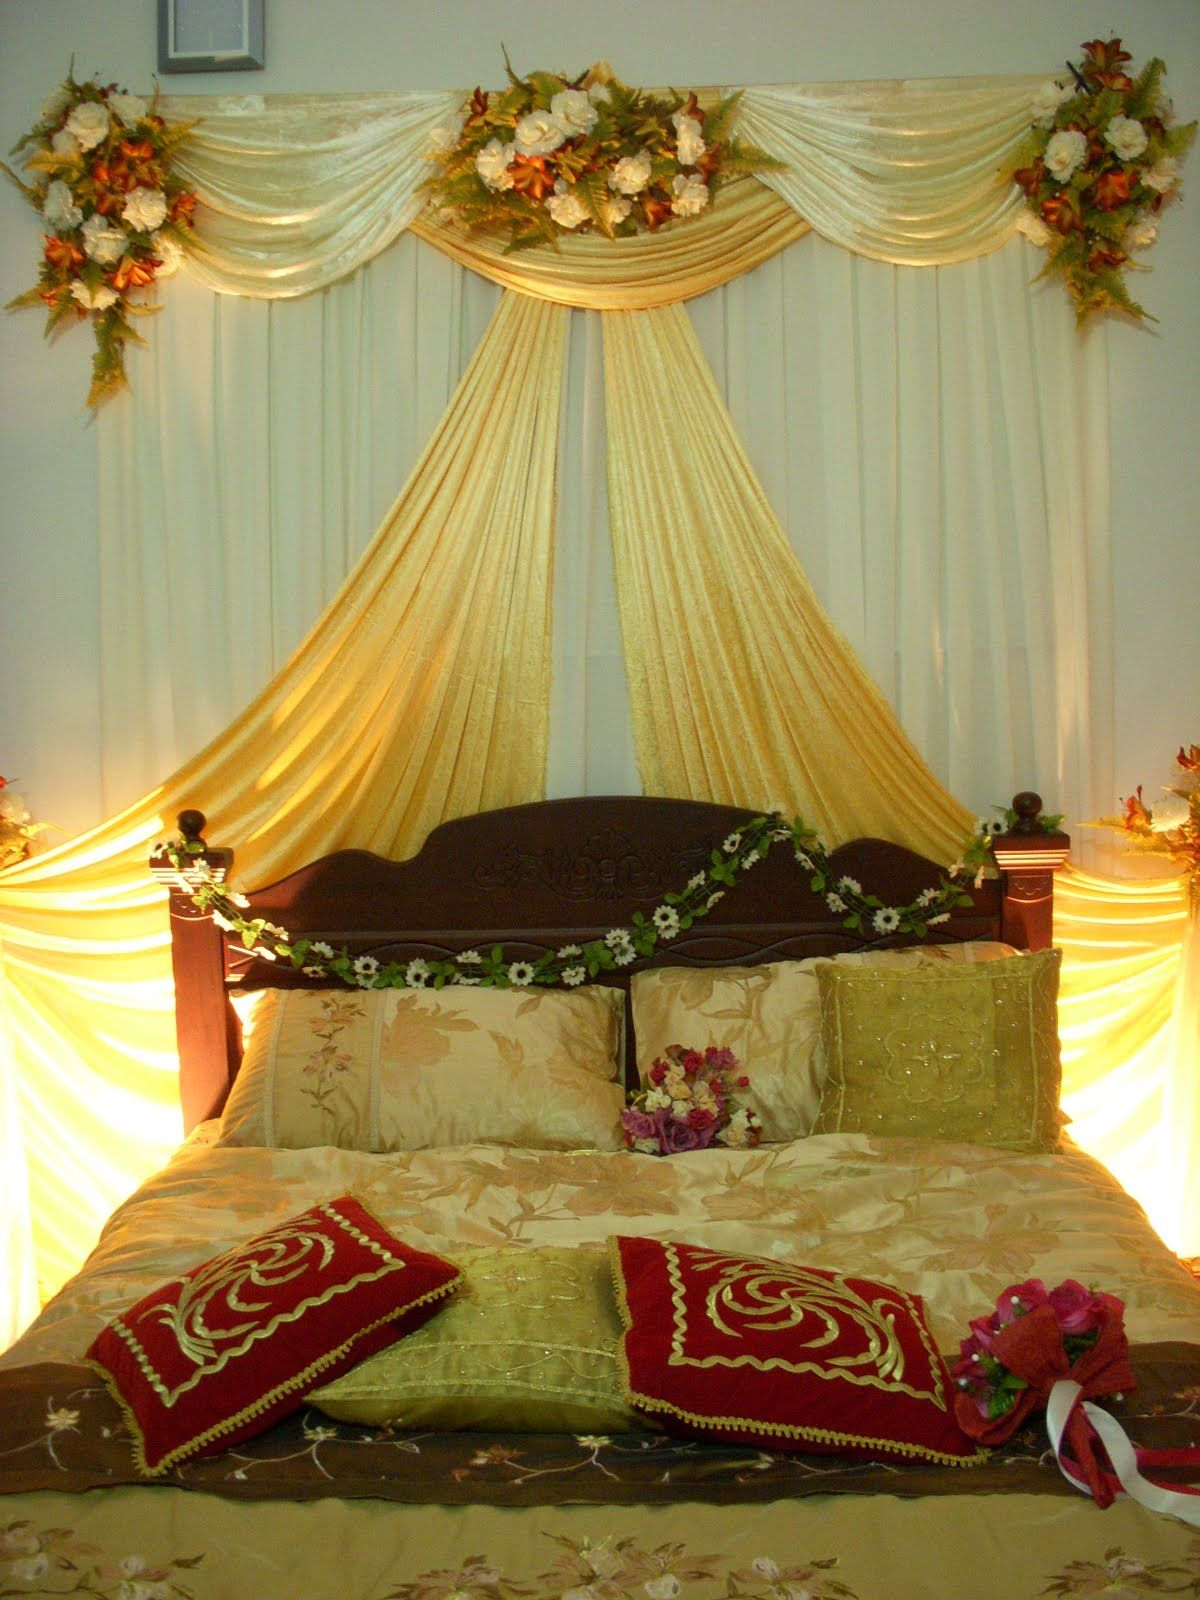 Wedding Bedroom Decorations Classic Bedroom Decoration For Wedding Night Wedding Bedrooms